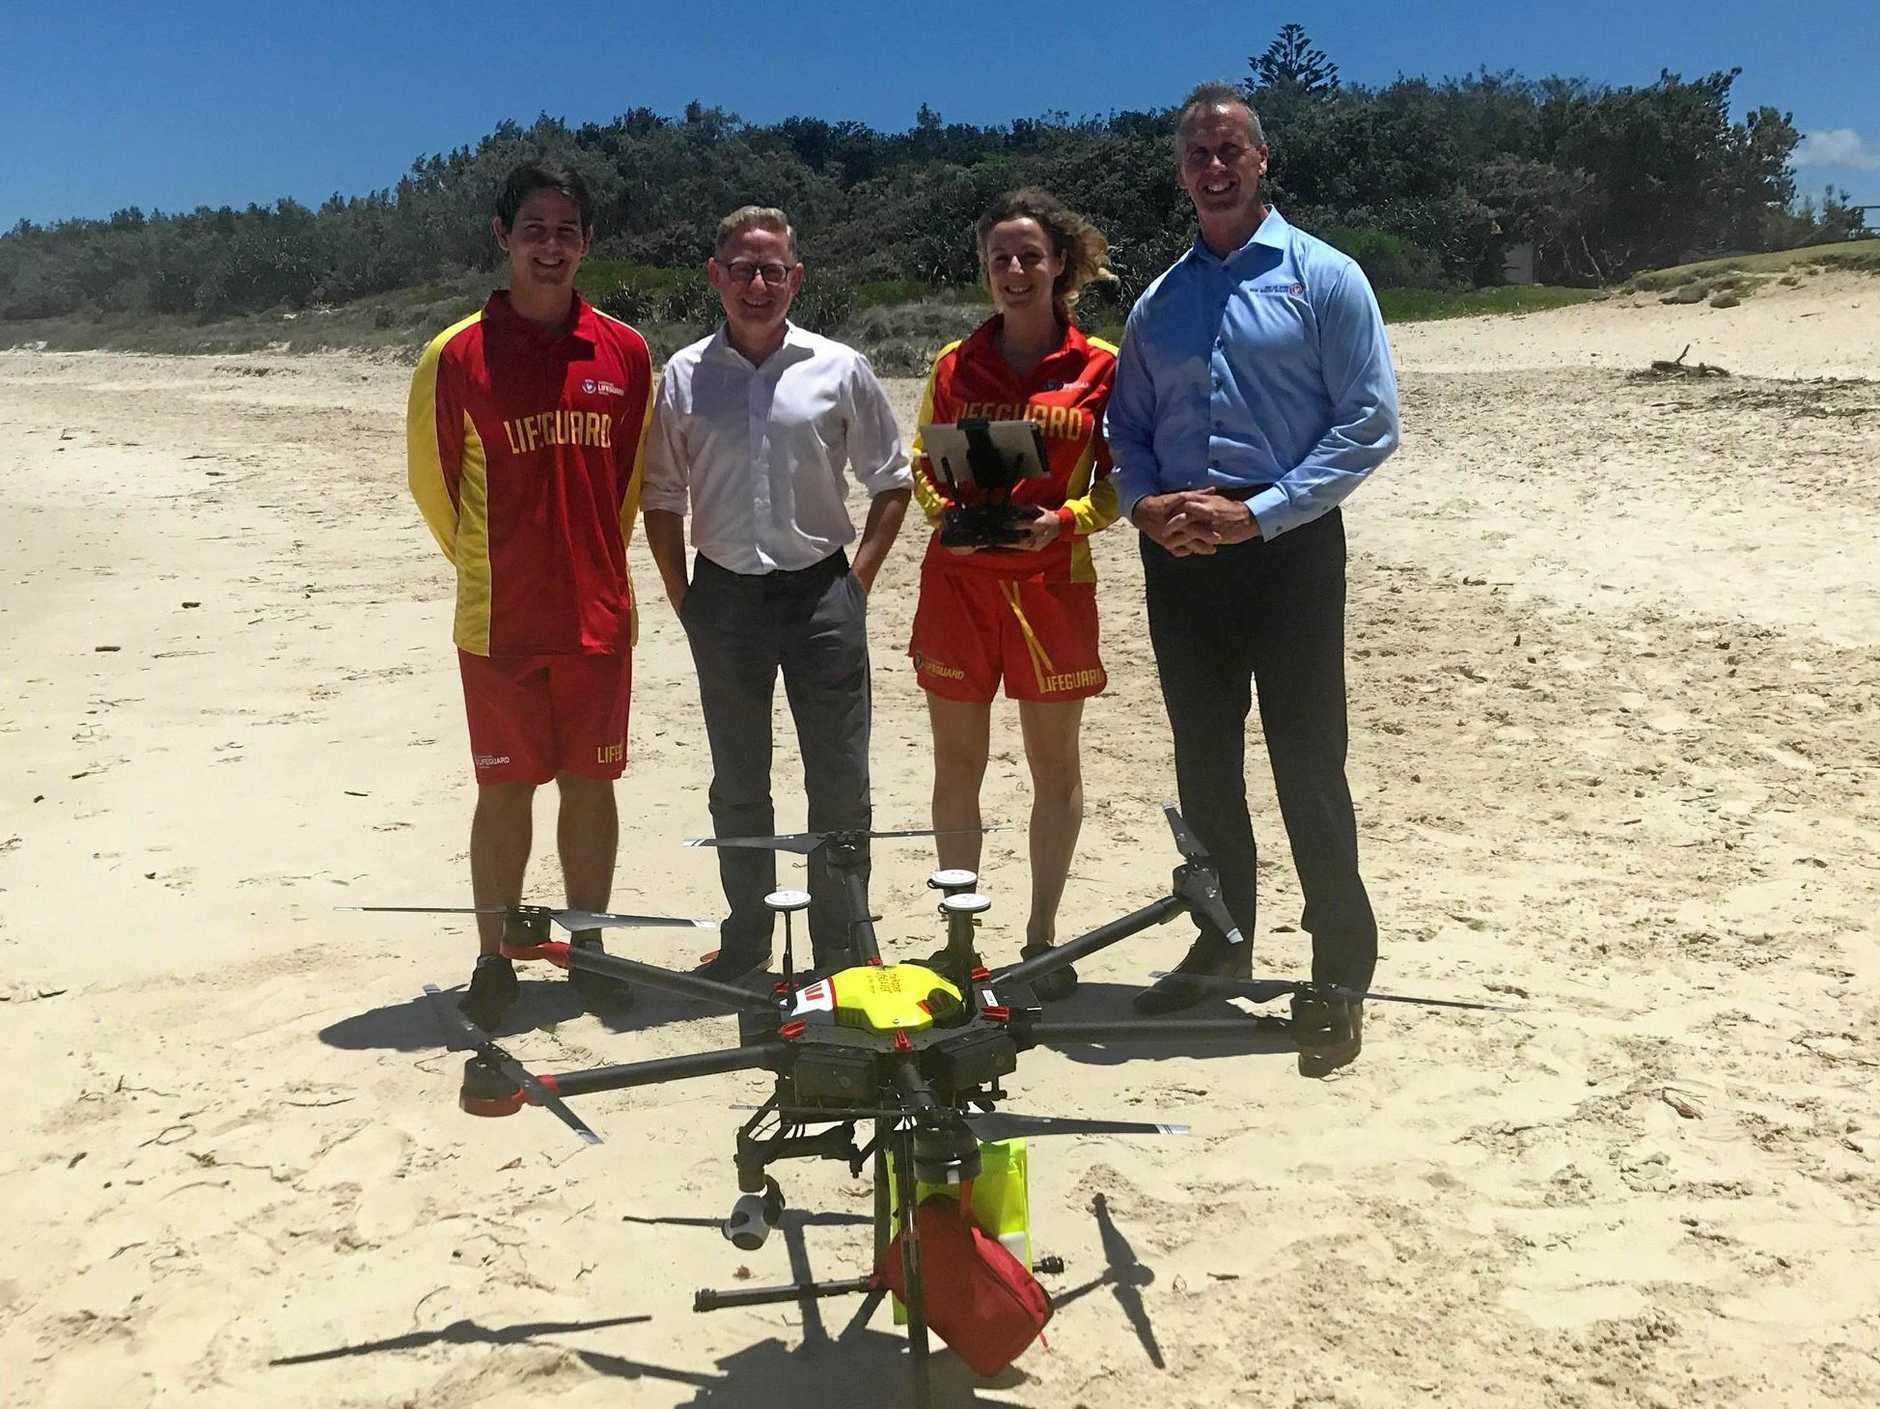 DRONE: Parliamentary Secretary for Northern NSW Ben Franklin with local lifesavers and CEO of Surf Life Saving NSW Stephen Pearce.